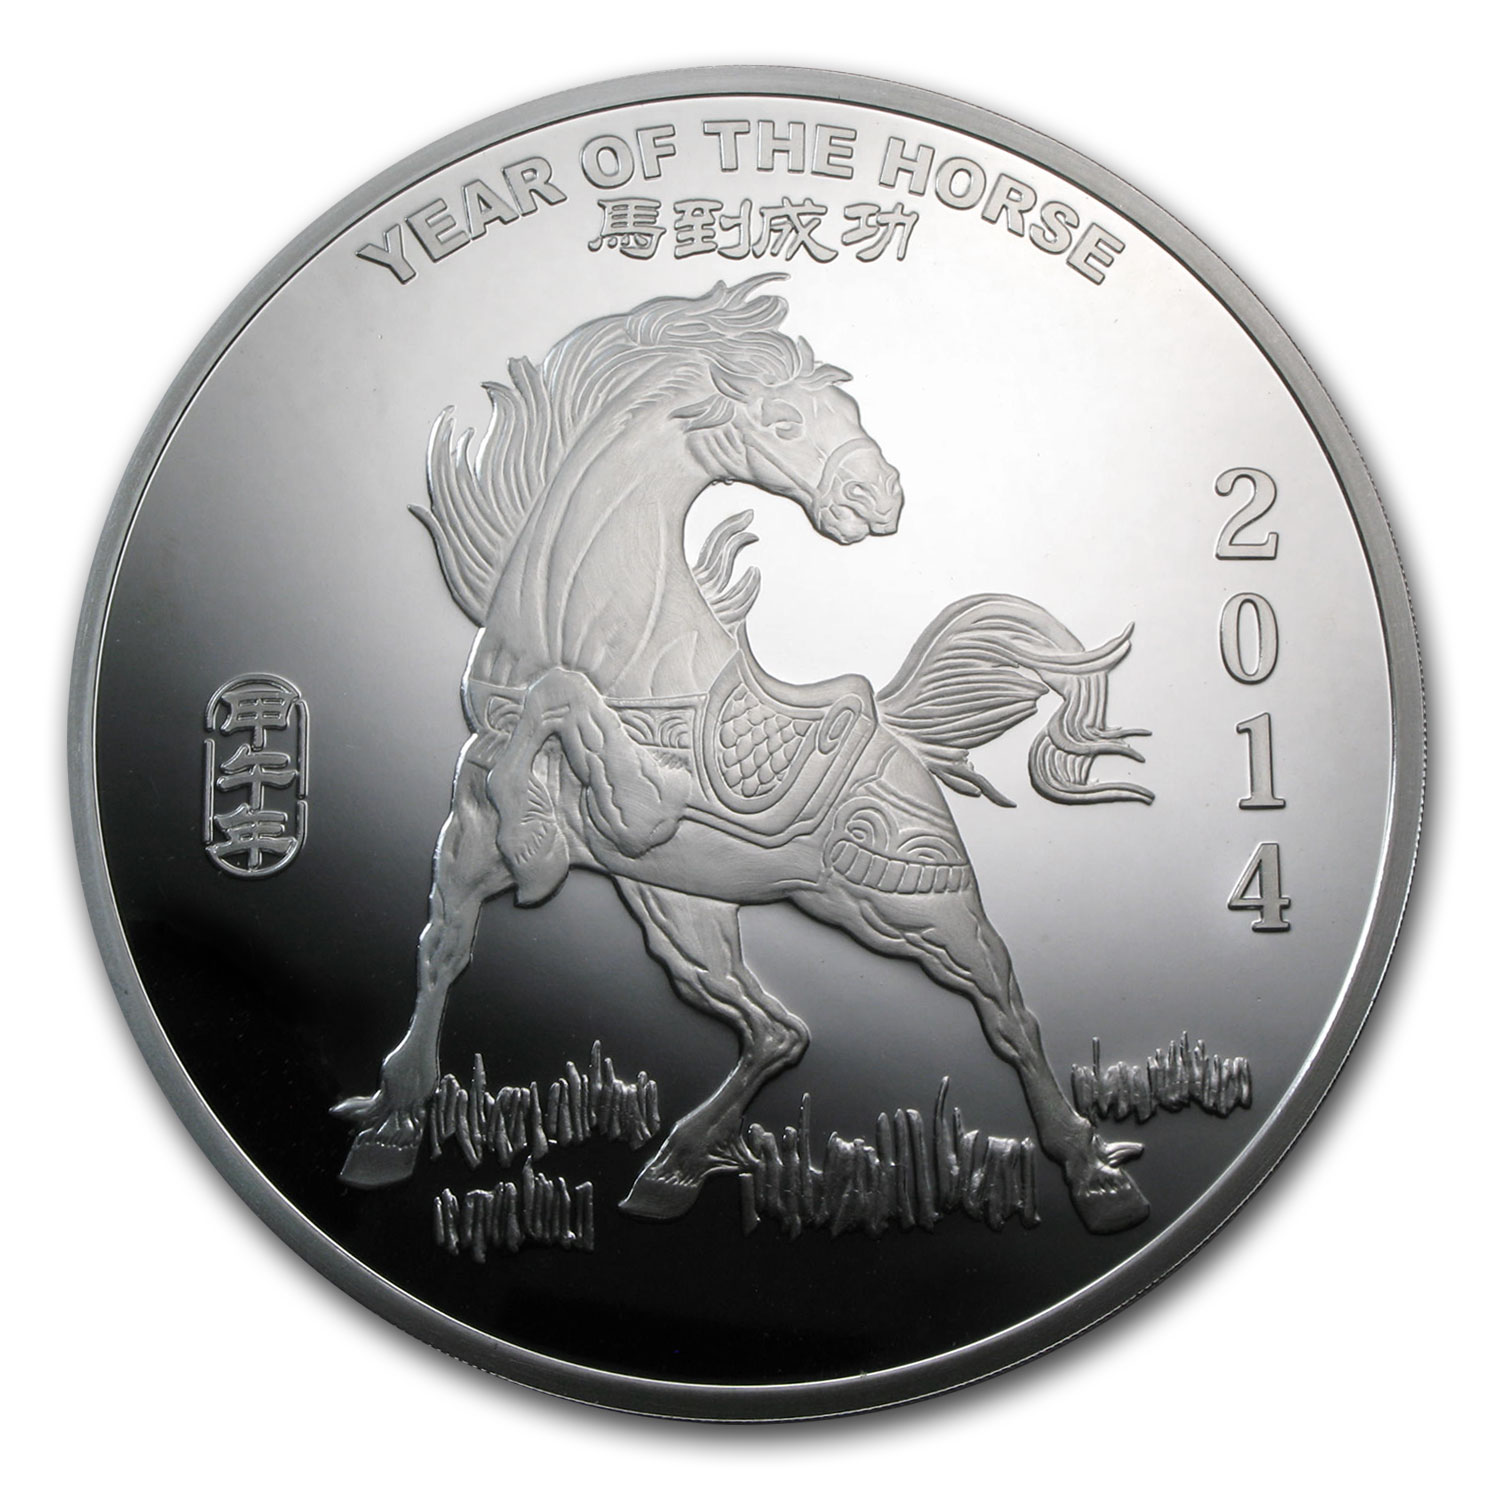 10 oz Silver Rounds - APMEX (2014 Year of the Horse)